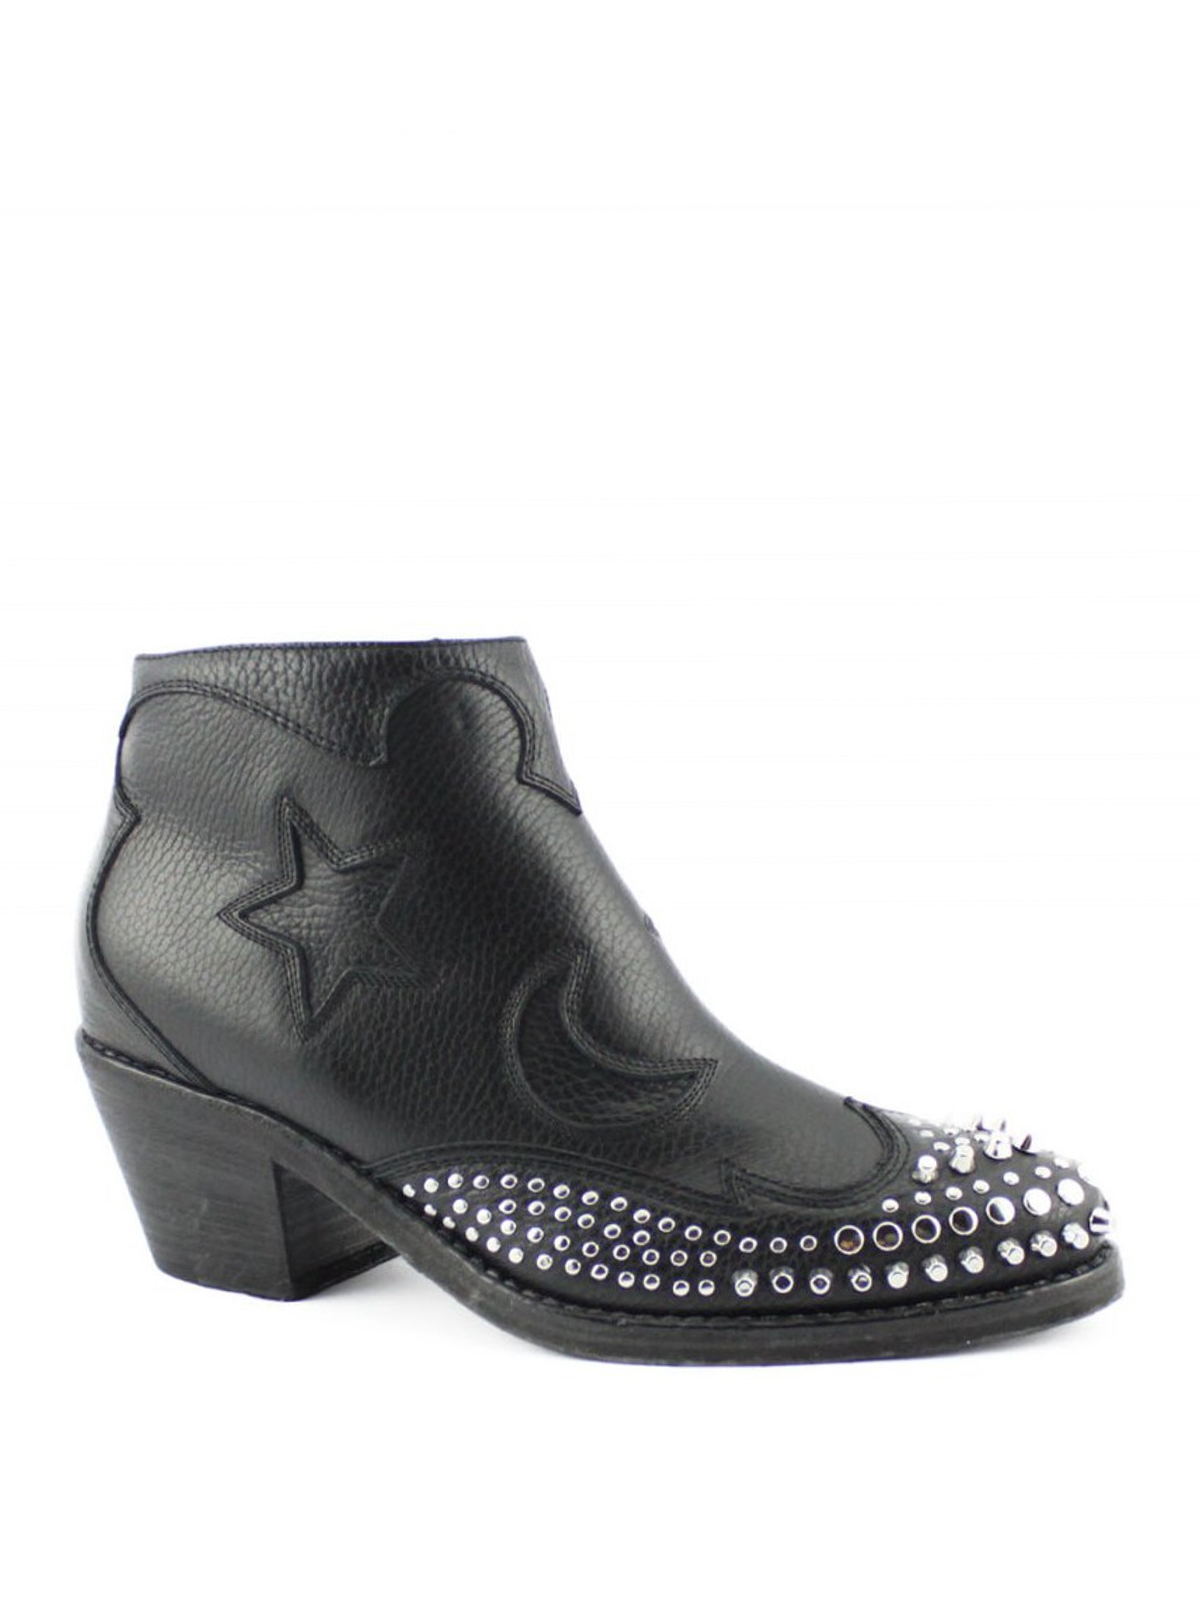 b5cea504572867 alexander-mcqueen-online-ankle-boots -star-and-moon-studded-booties-00000098720f00s022.jpg